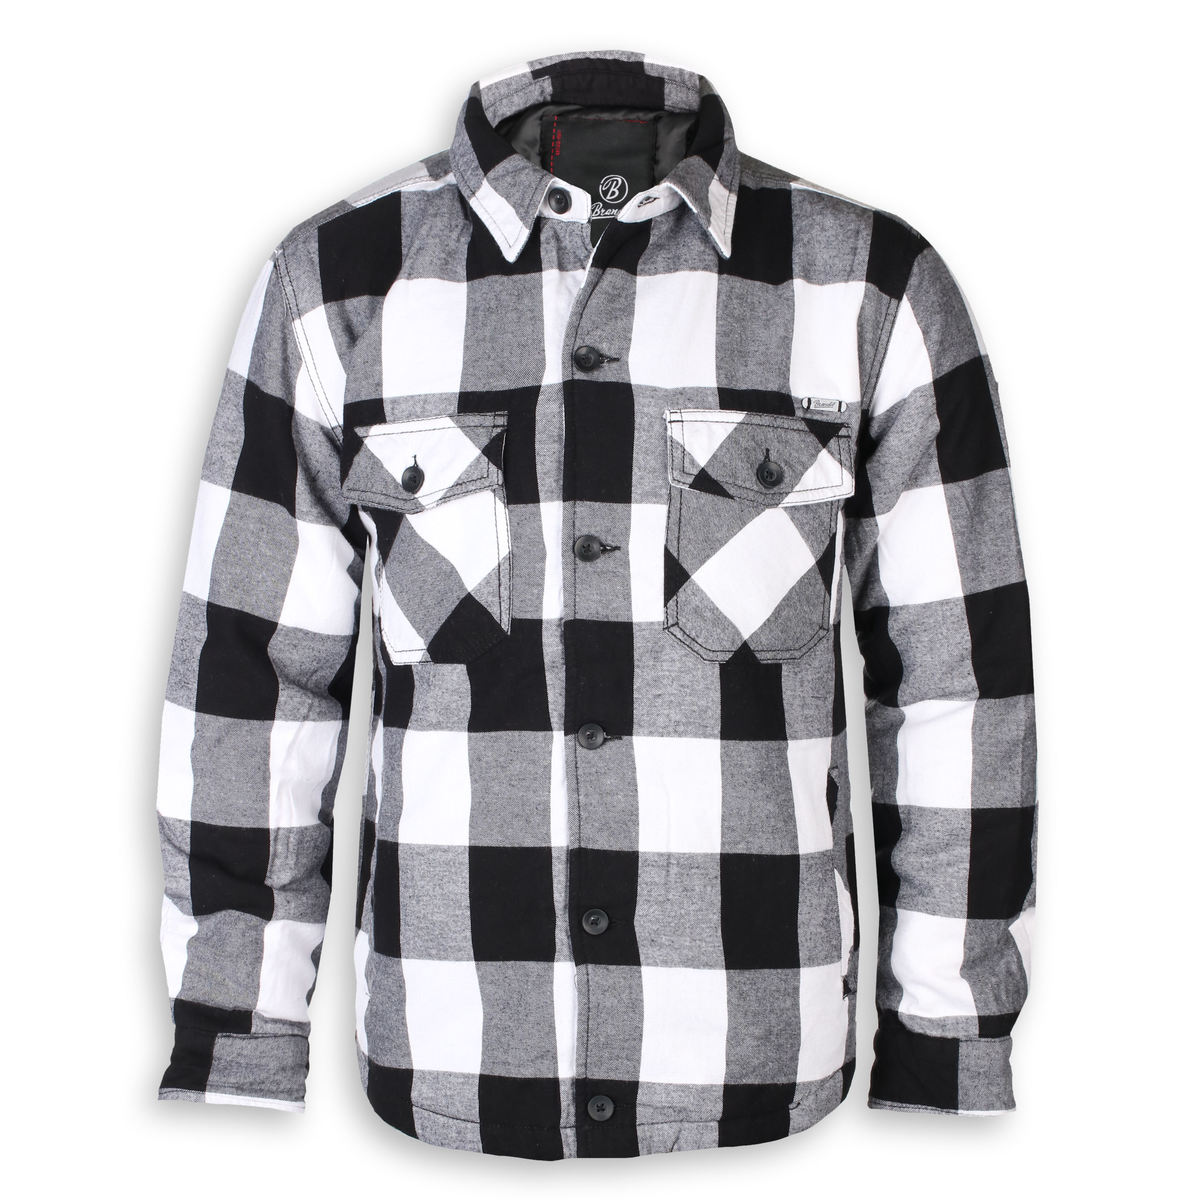 bunda zimní - Lumberjacket checked - BRANDIT - 9478-whiteblack check